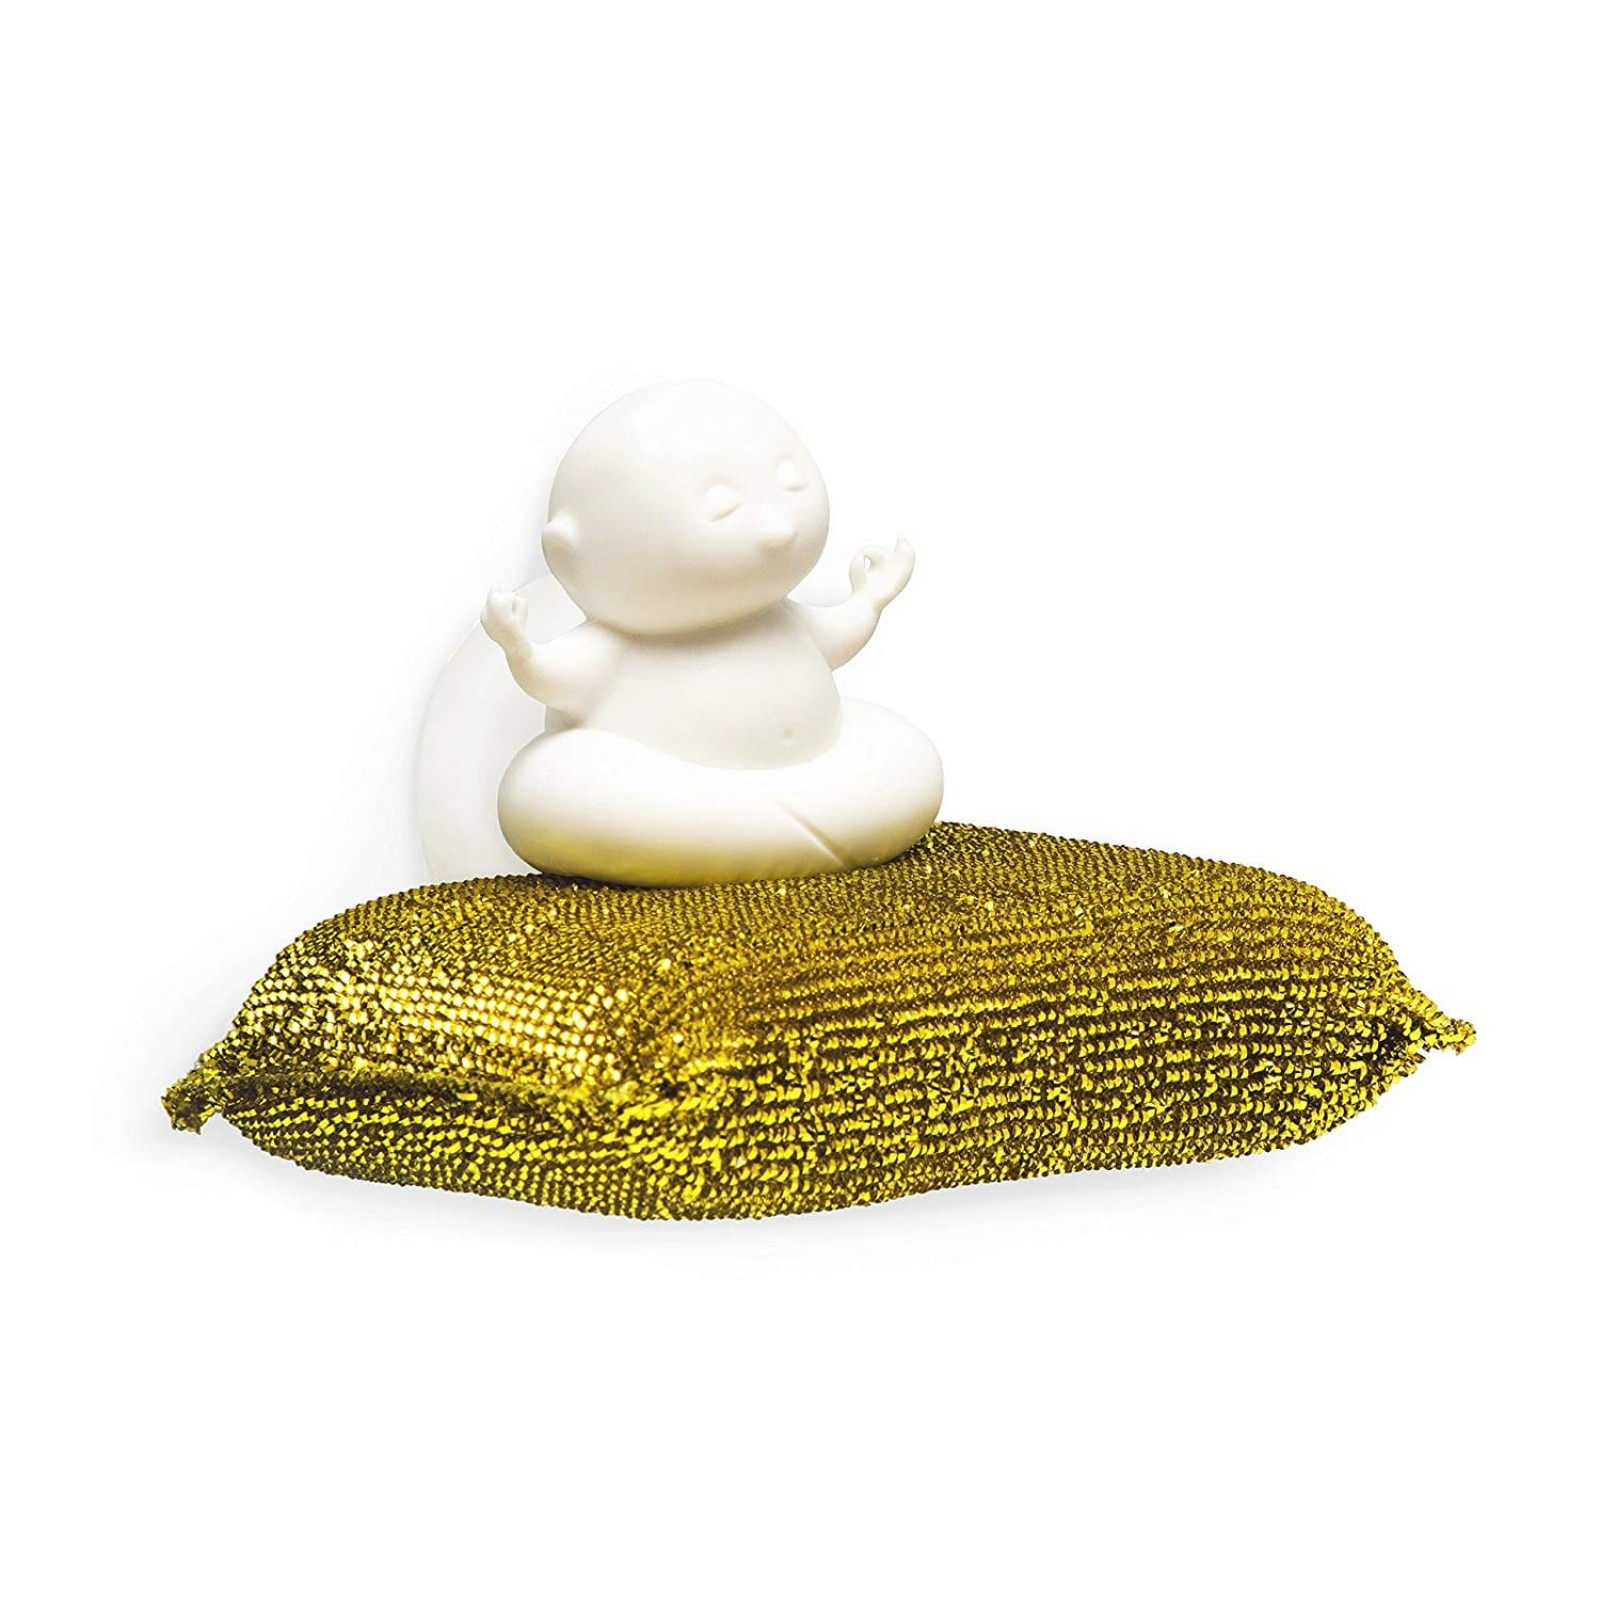 Yogi Sponge Holder - Peleg Design